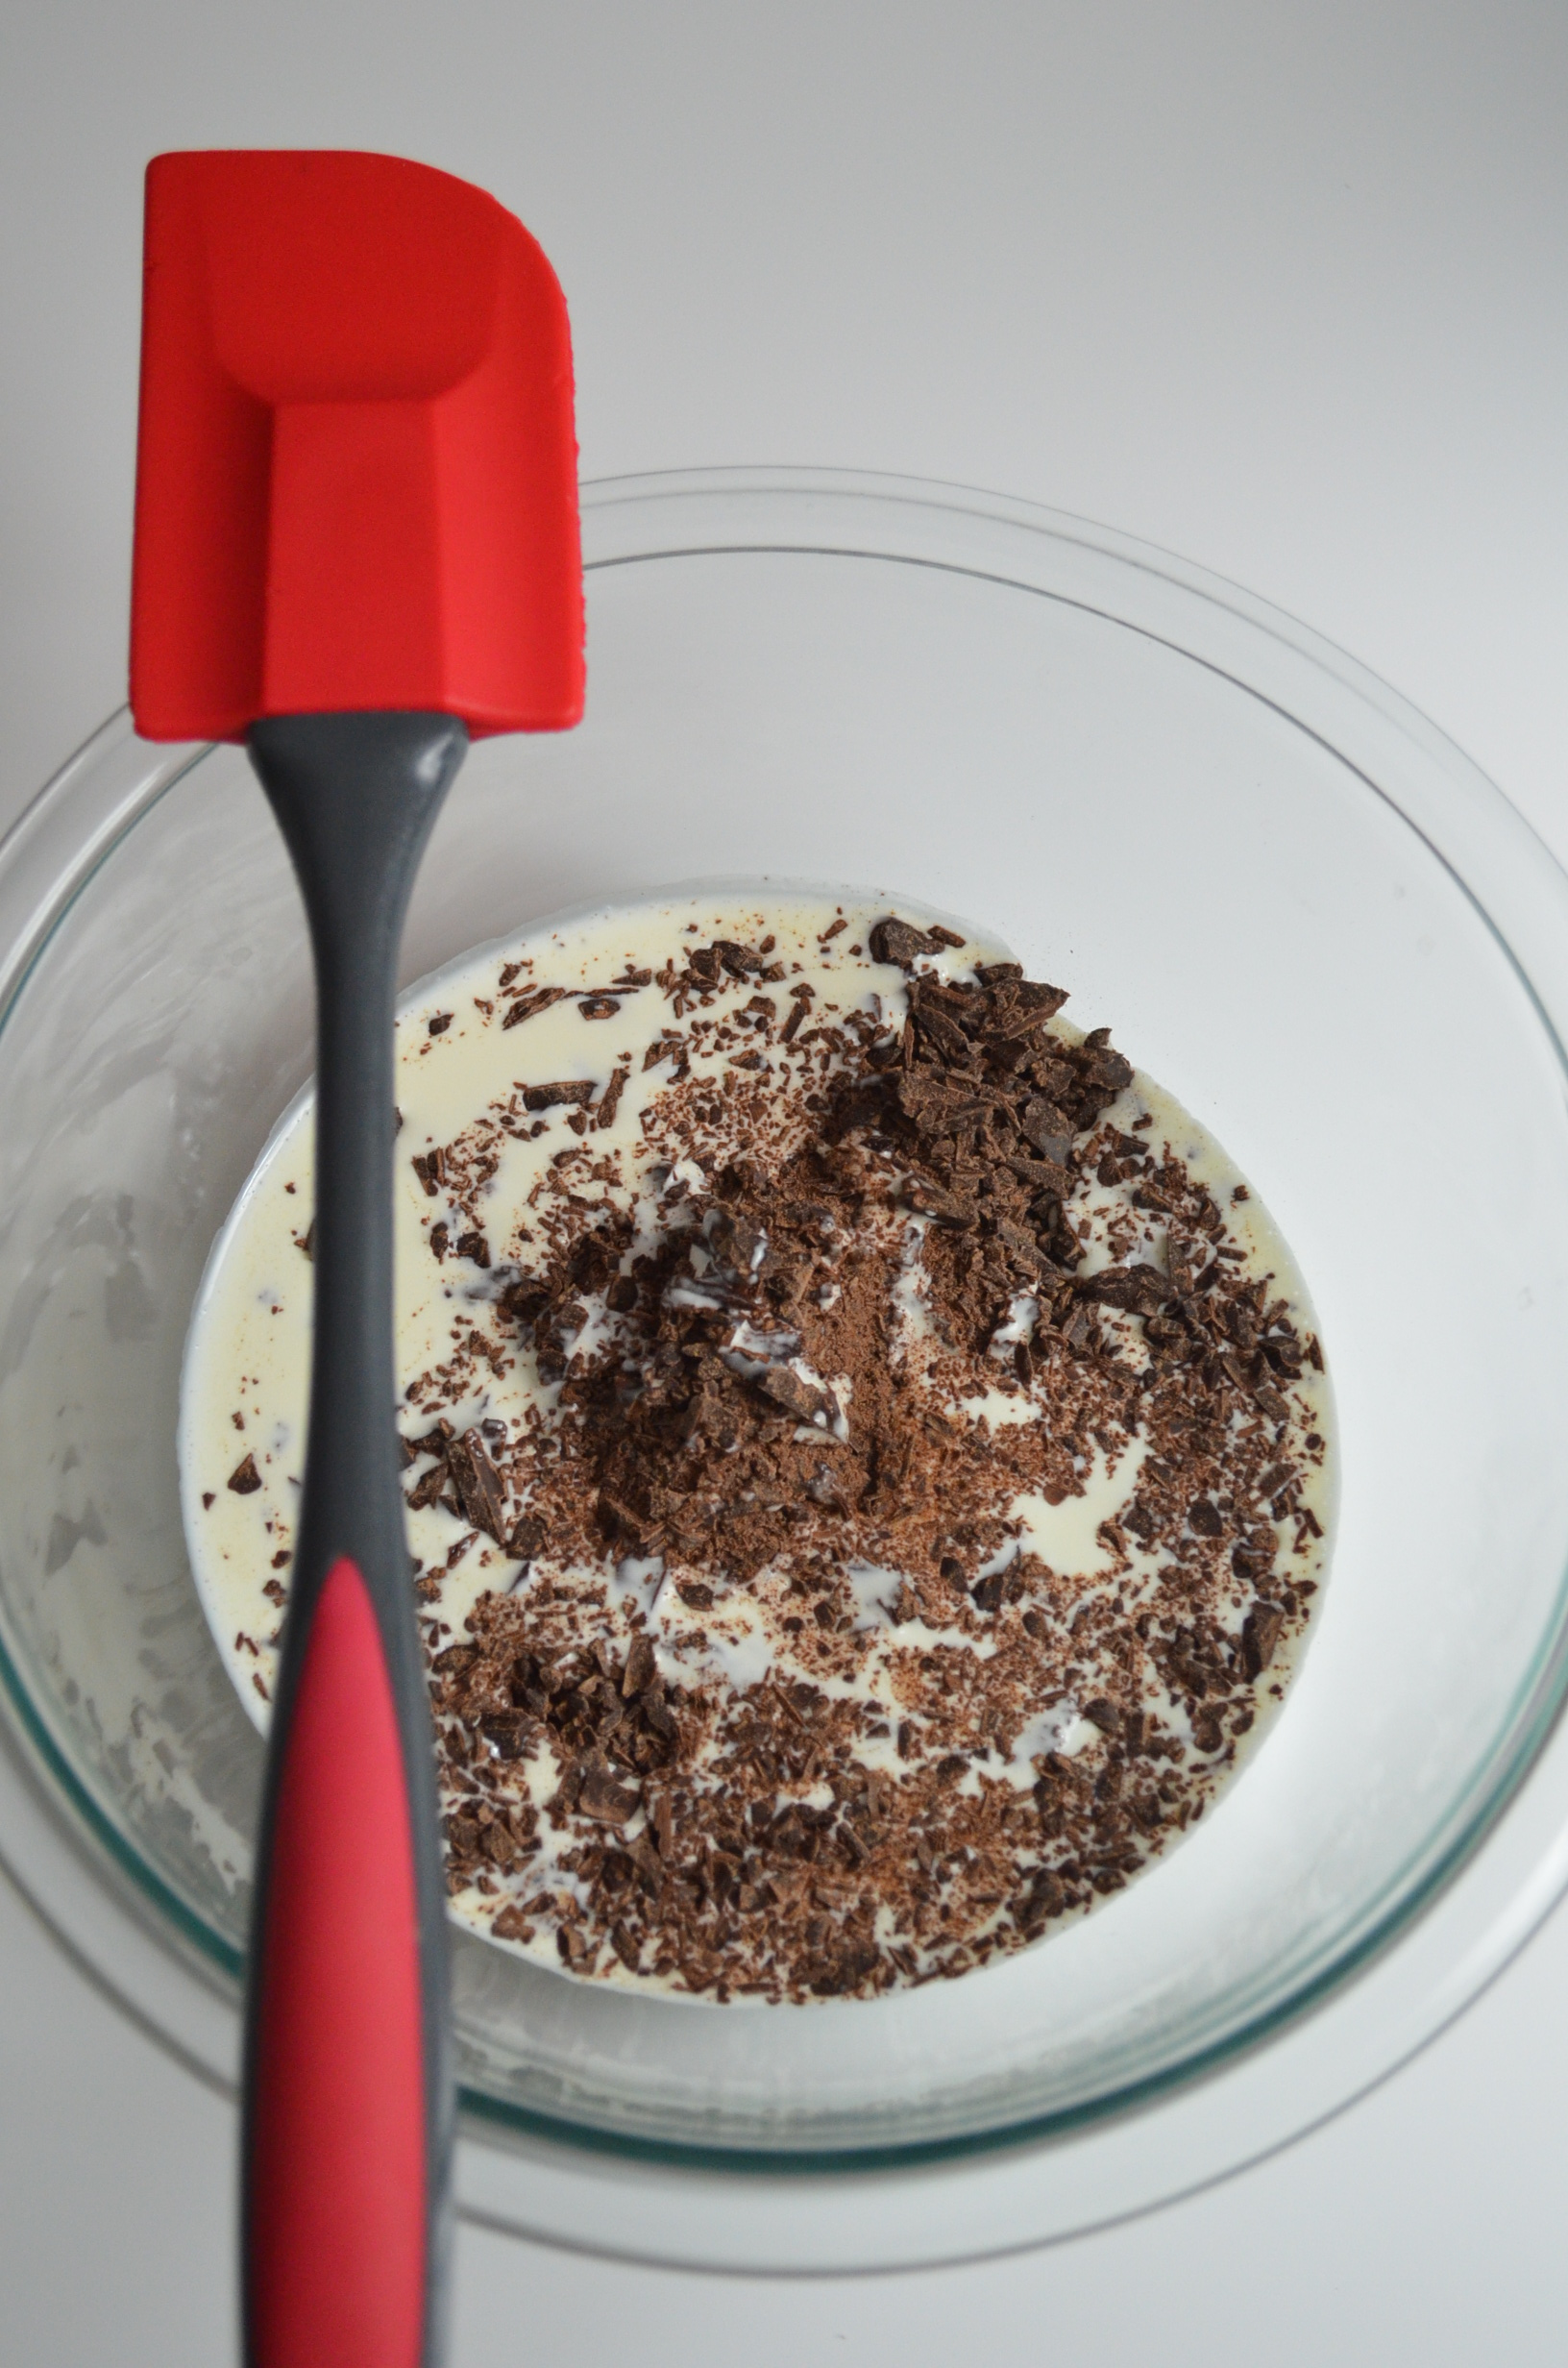 How To Use Chocolate Ganache at SweetNSpicliving.com